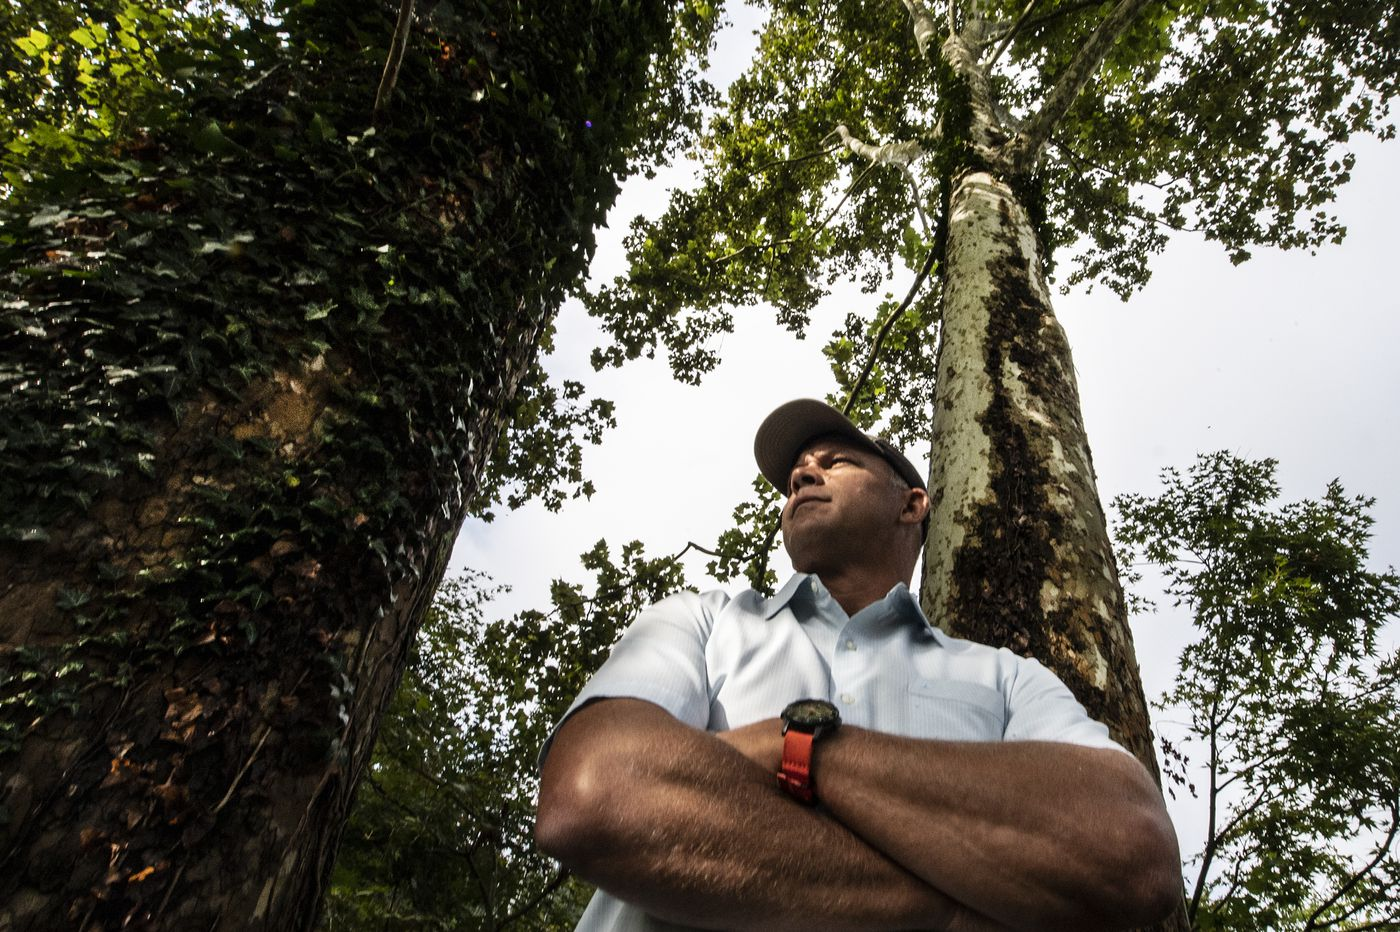 Here's advice from a self-professed tree-hugger and tree detective